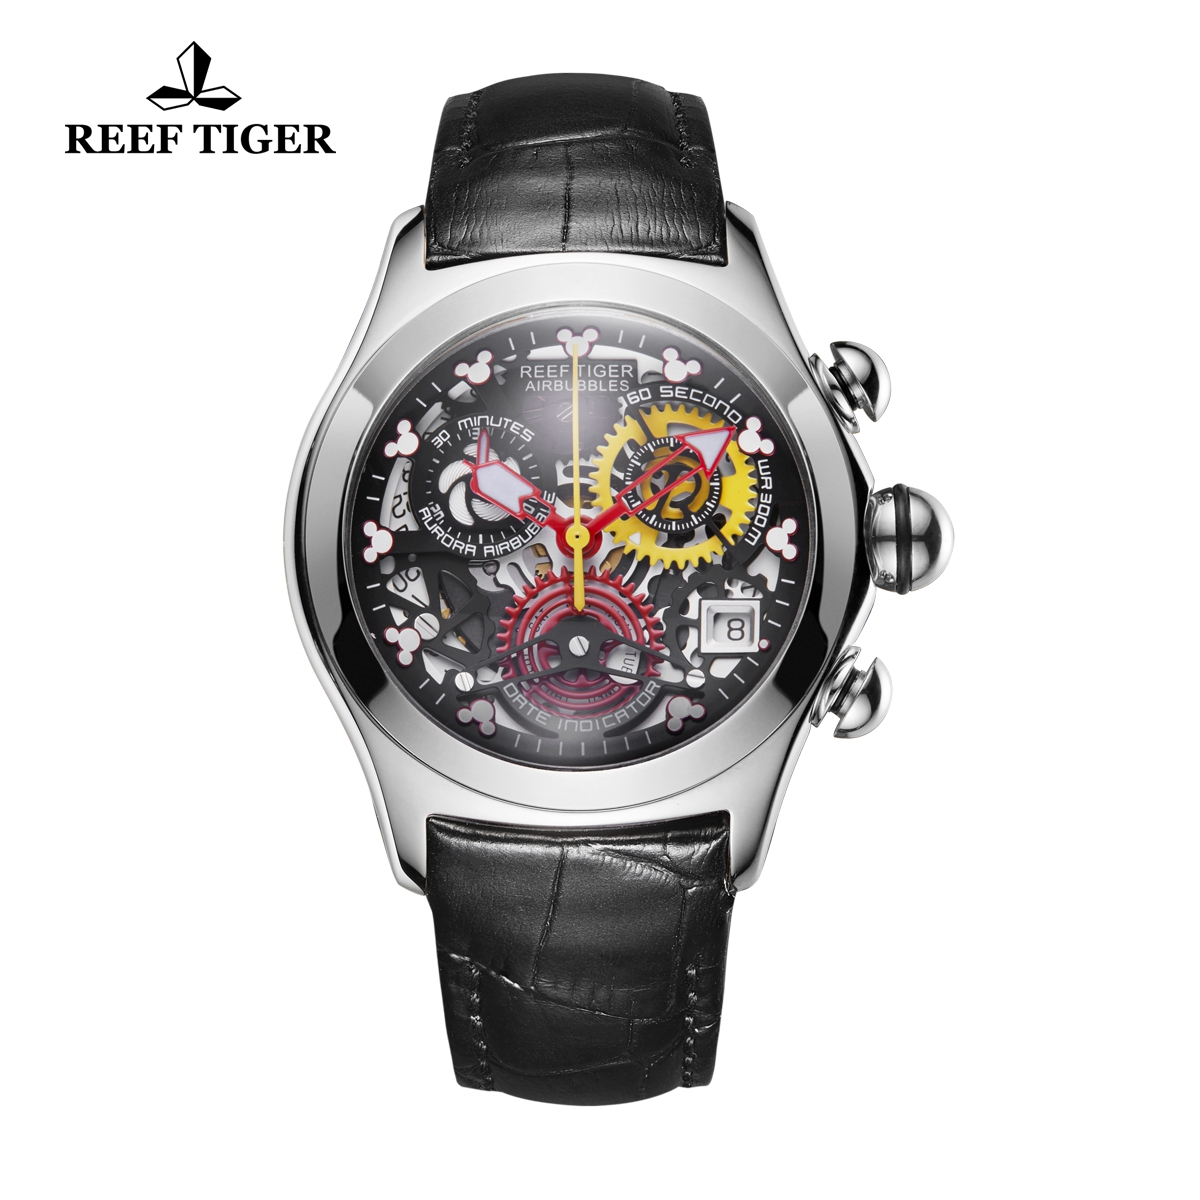 Reef Tiger Air Bubble Casual Watches Quartz Watch Steel Case Leather Strap RGA7181